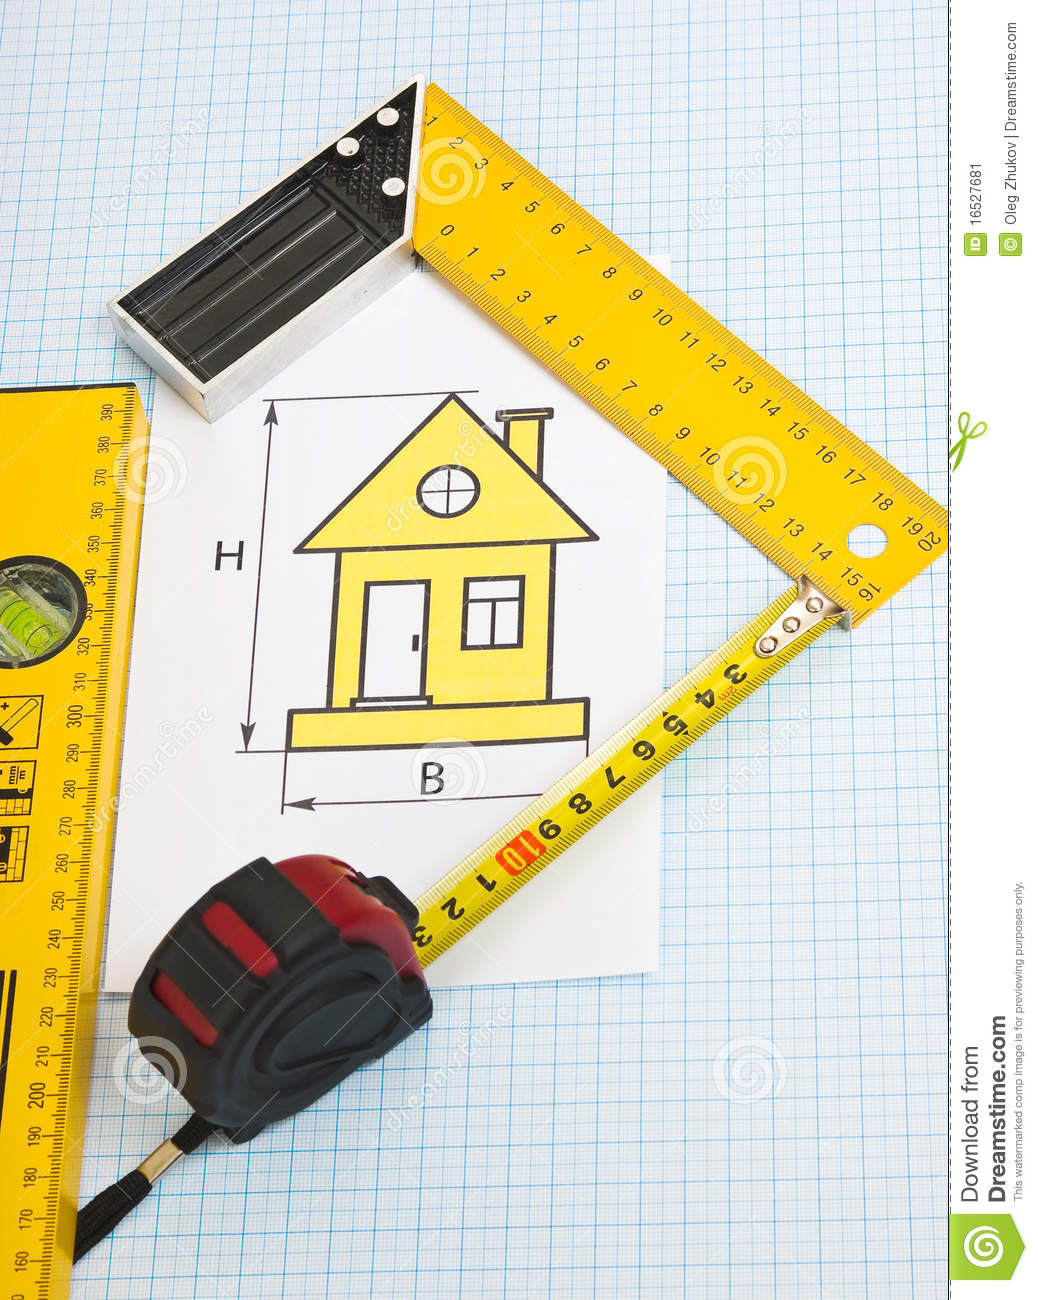 Drawing At Home With Construction Tools Stock Image